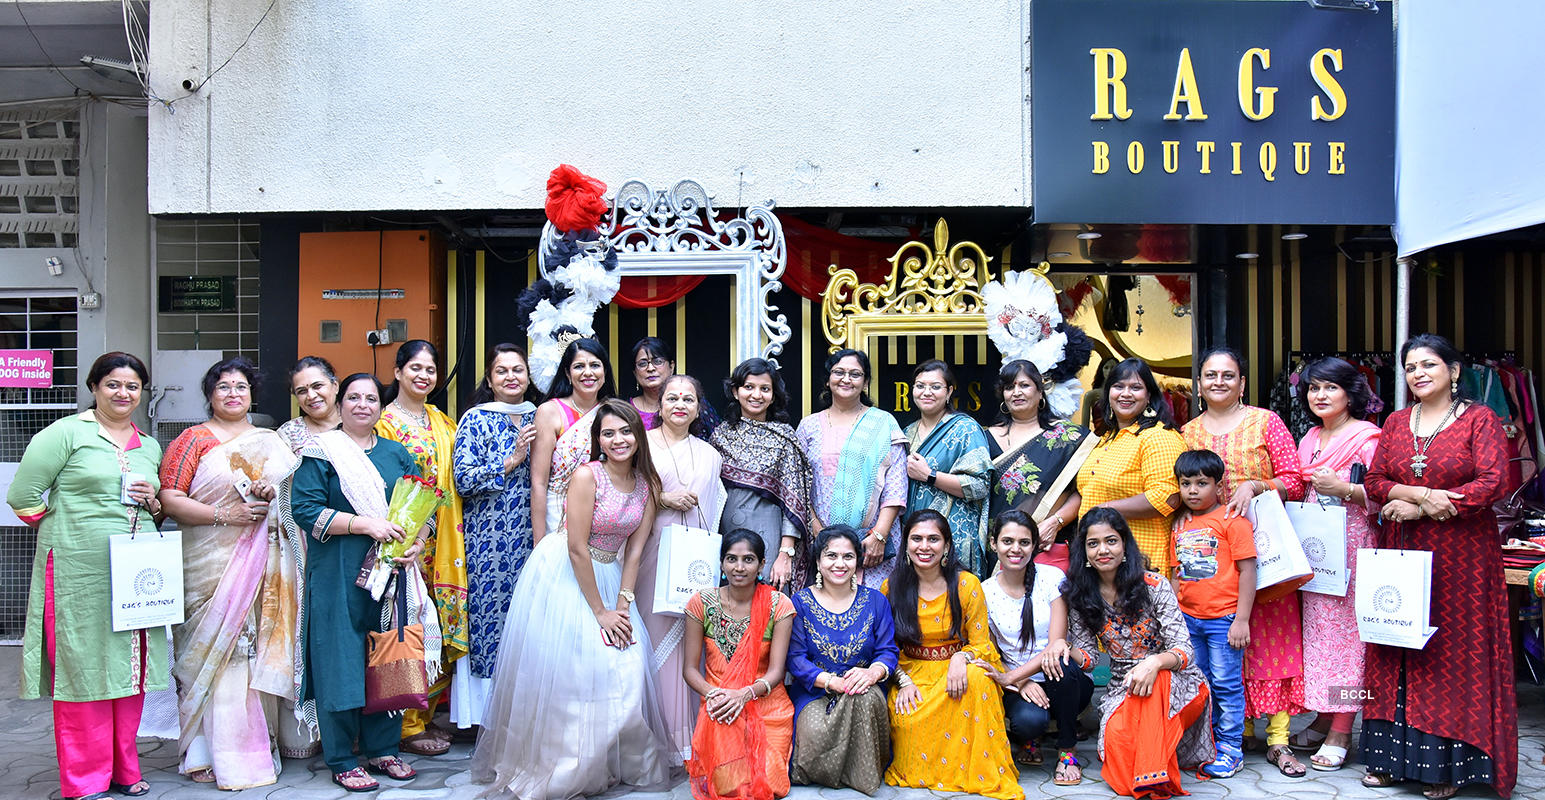 Shailaja Prasad celebrates 20th anniversary of her boutique